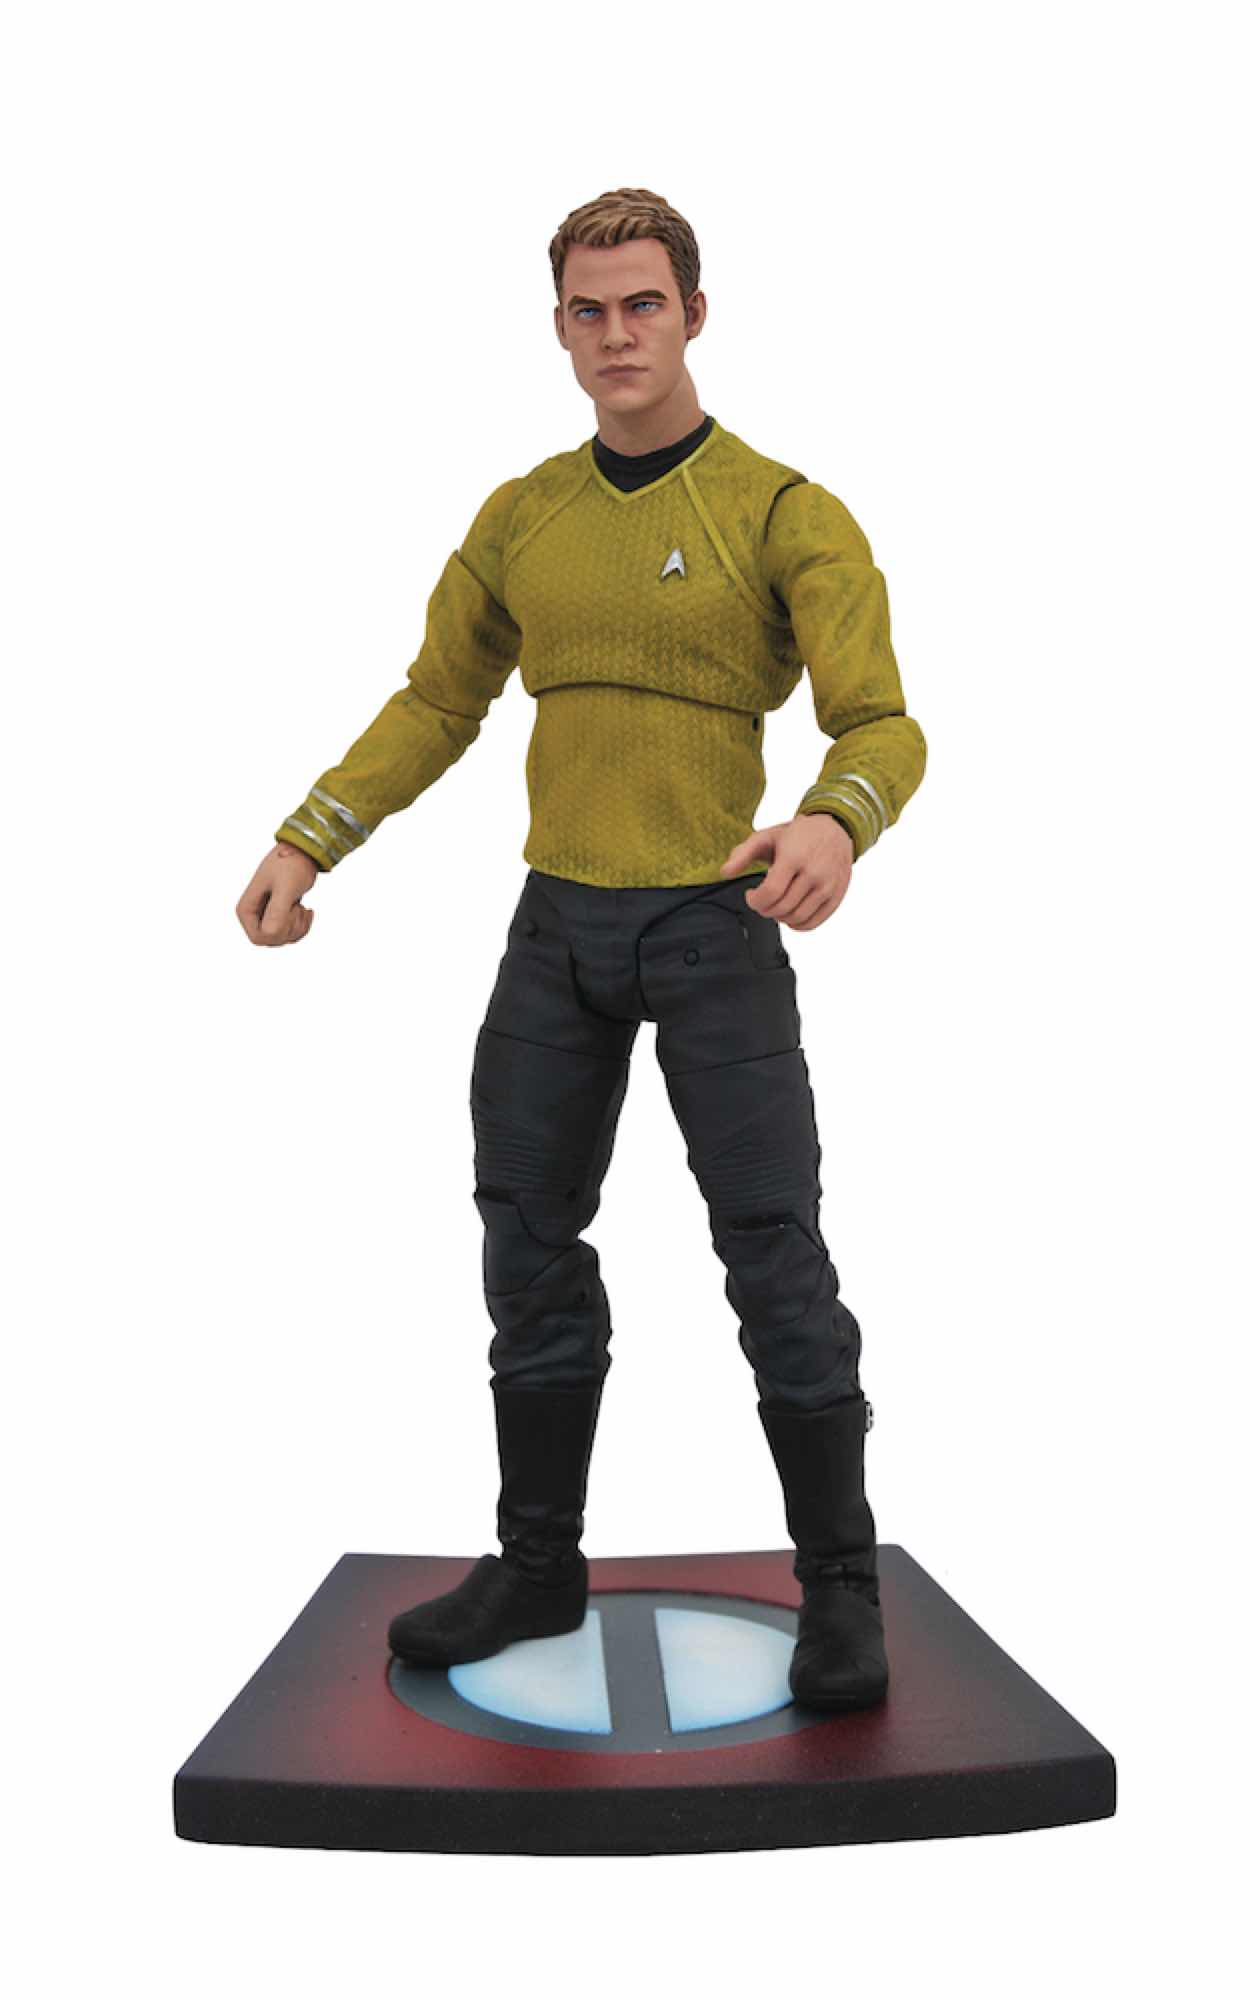 KIRK FIGURA 18 CM STAR TREK INTO DARKNESS MOVIE SELECT ACTION FIGURE